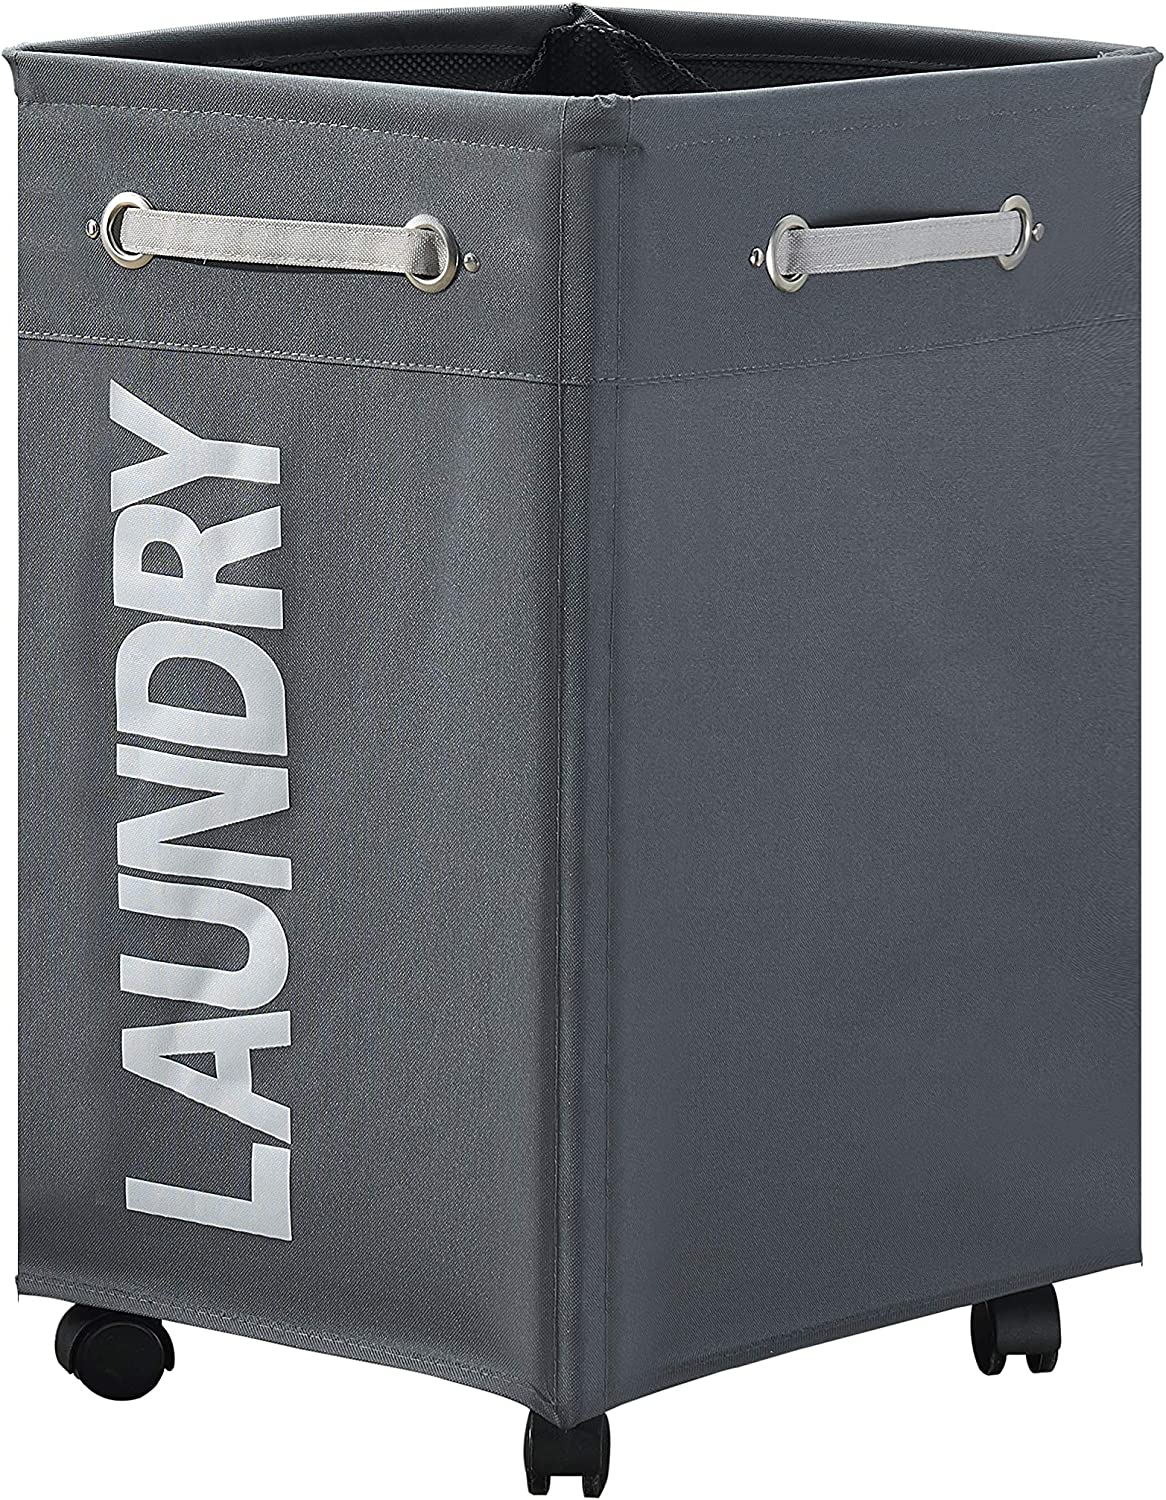 """HOMEAMY 23"""" Wheeled Laundry Hamper Large Collapsible with Breathable Cover Heavy Duty Laundry Sorter Dirty Clothes Organizer Bin Waterproof Foldable Laundry Basket Rolling Extra Large Bag (Dark Gray)"""